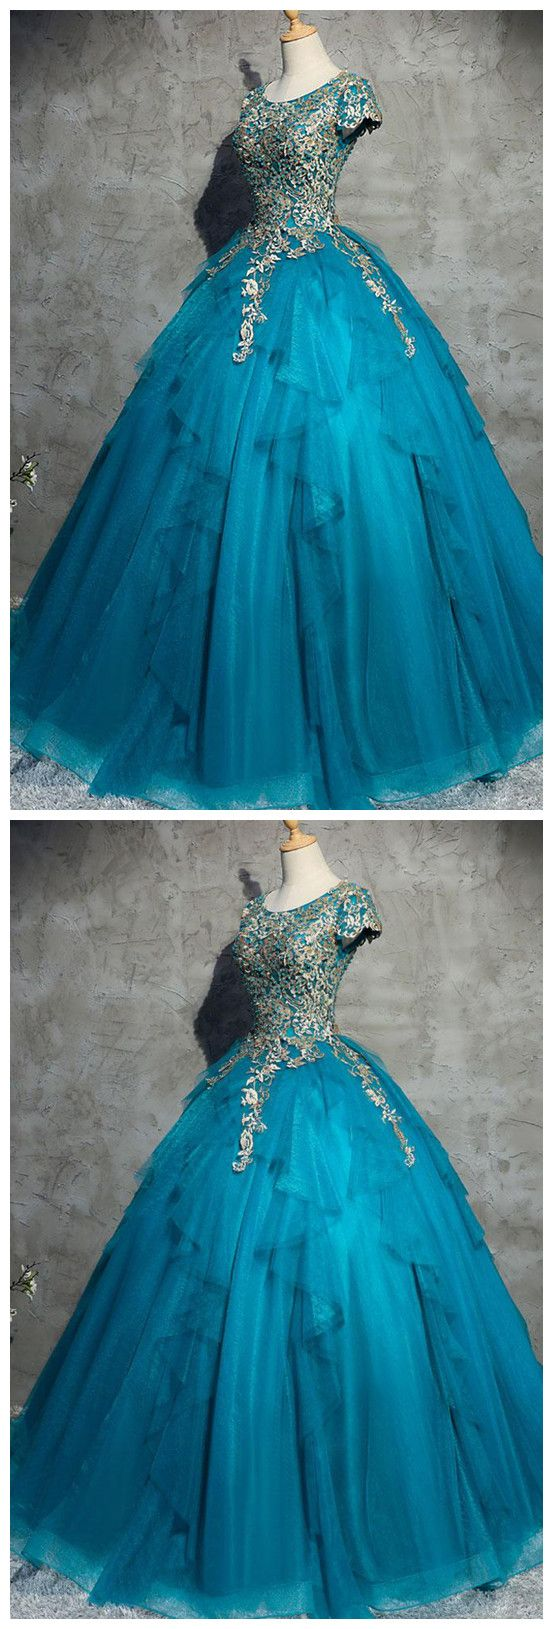 Unique blue tulle lace top round neck winter formal prom dresses ...